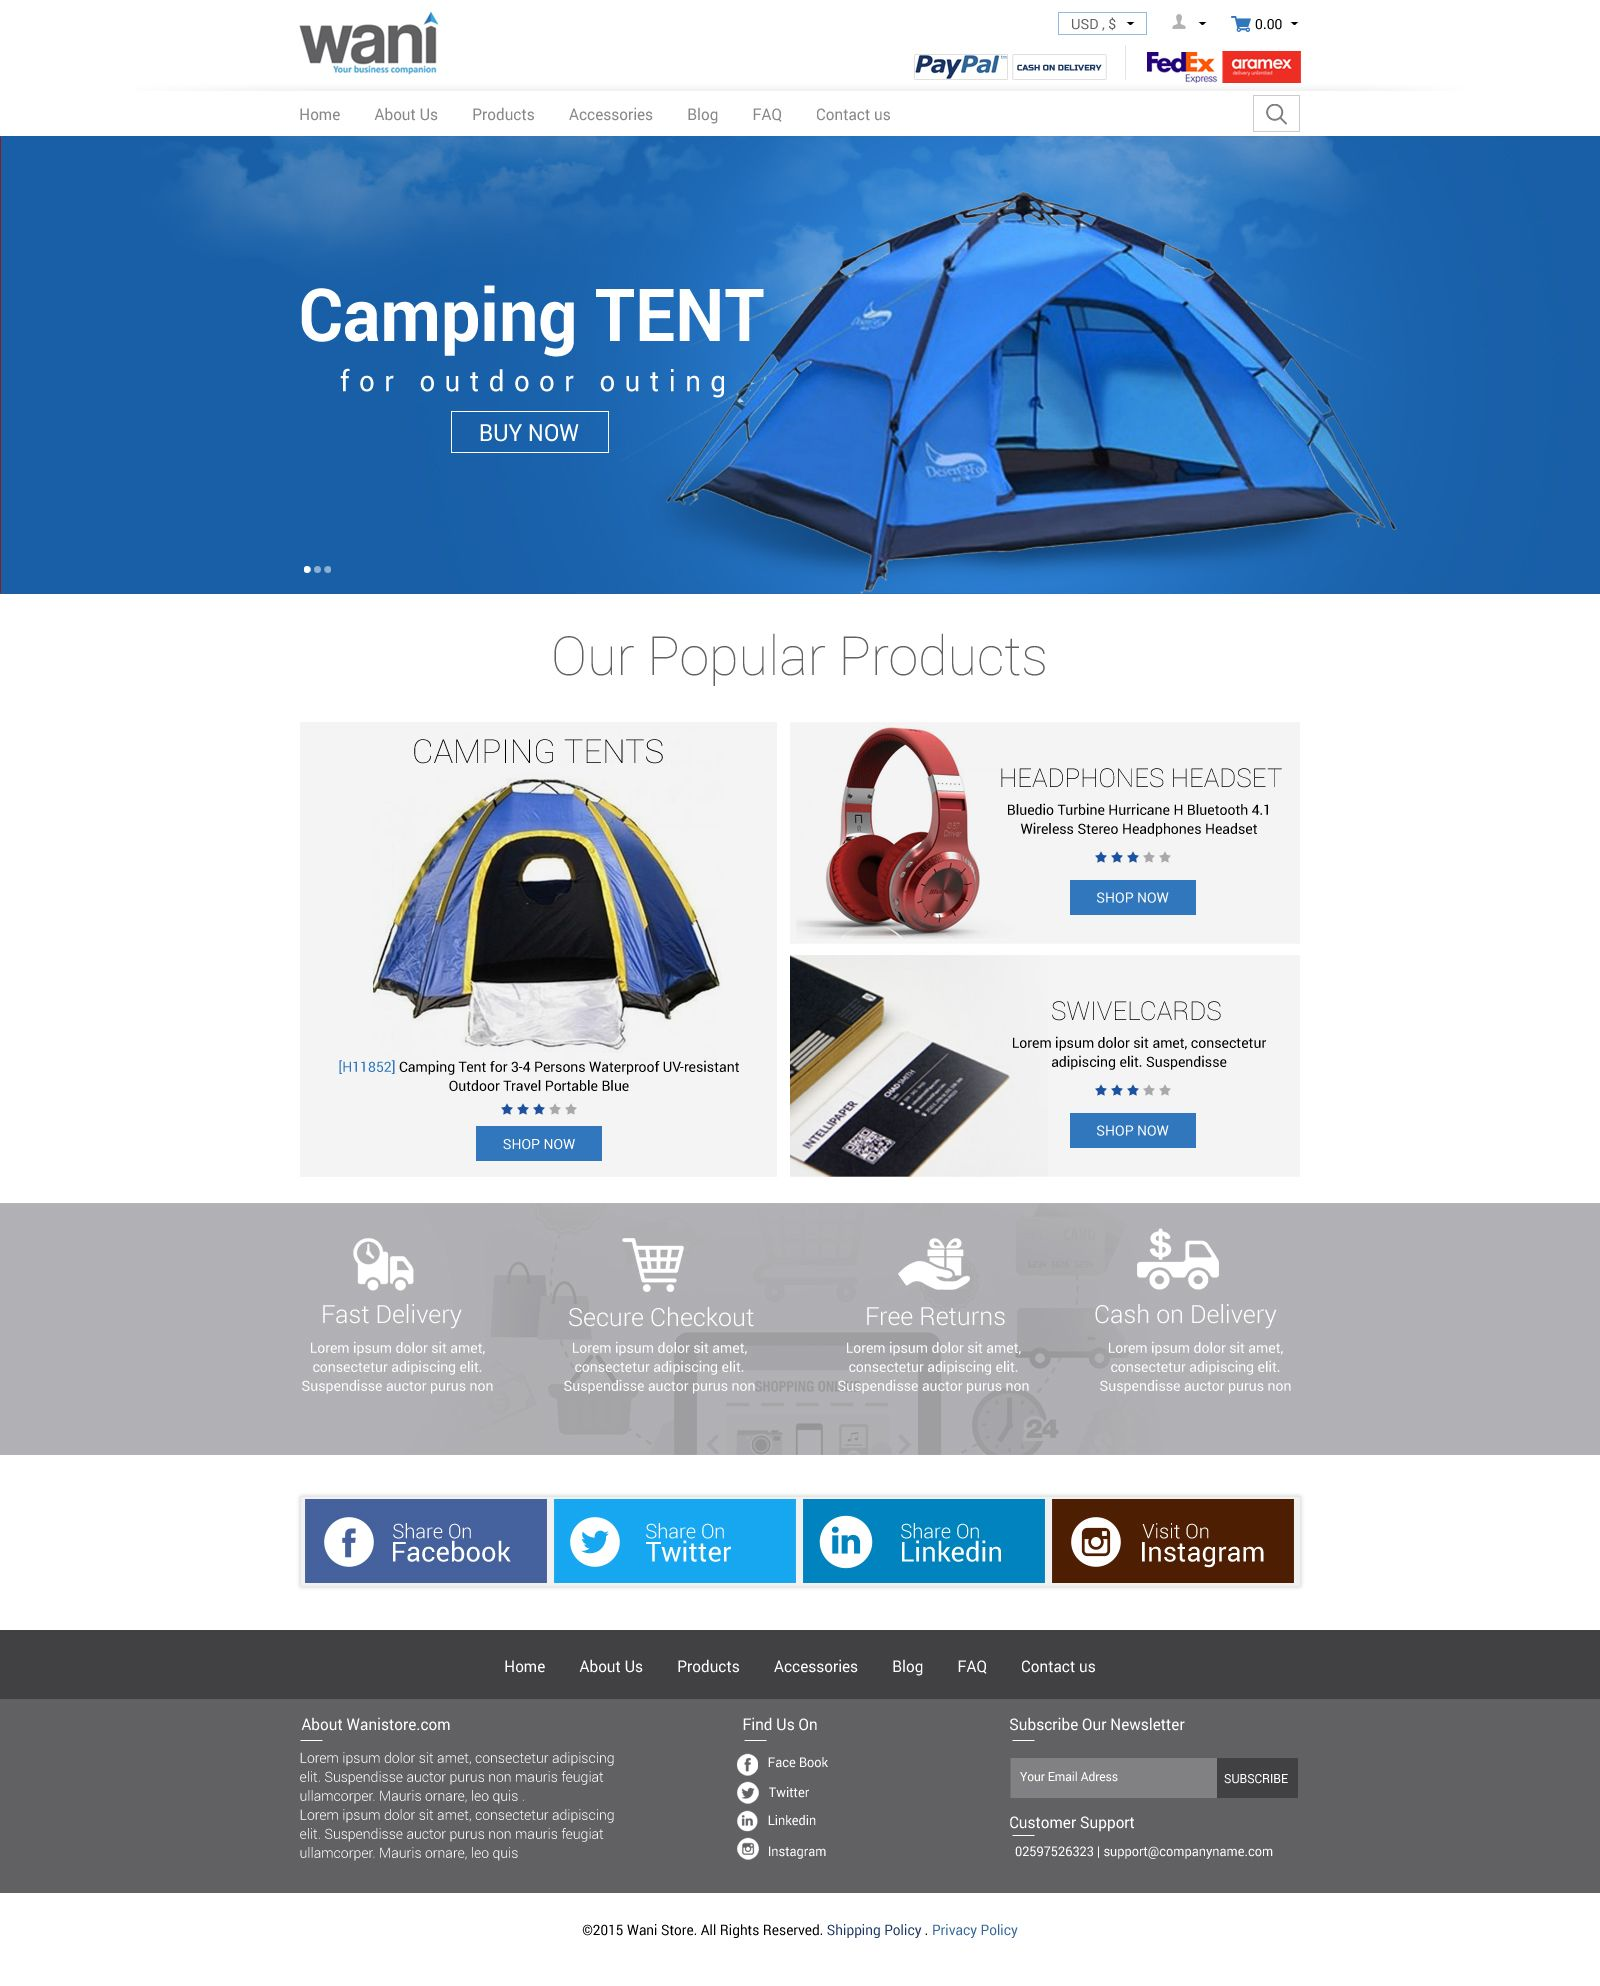 TENT MANUFACTURING CO WEBSITE TEMPLATE KICK STARTER CONCEPT  sc 1 st  Pinterest & TENT MANUFACTURING CO WEBSITE TEMPLATE KICK STARTER CONCEPT | DINA ...